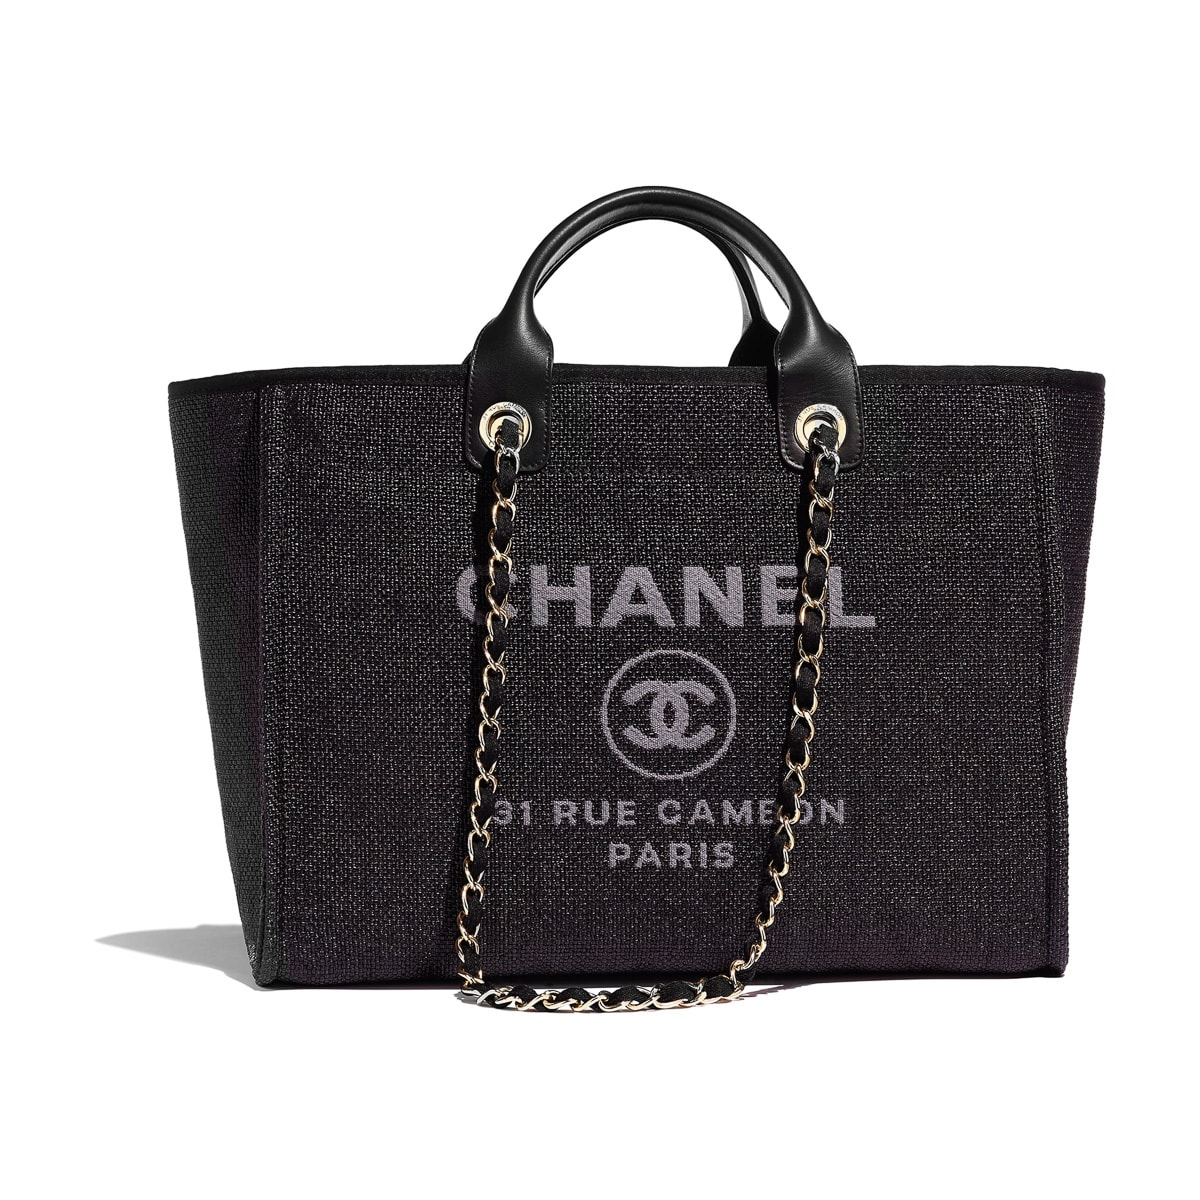 e6241365fd71 Chanel Cruise 2019 Bag Price | Stanford Center for Opportunity ...